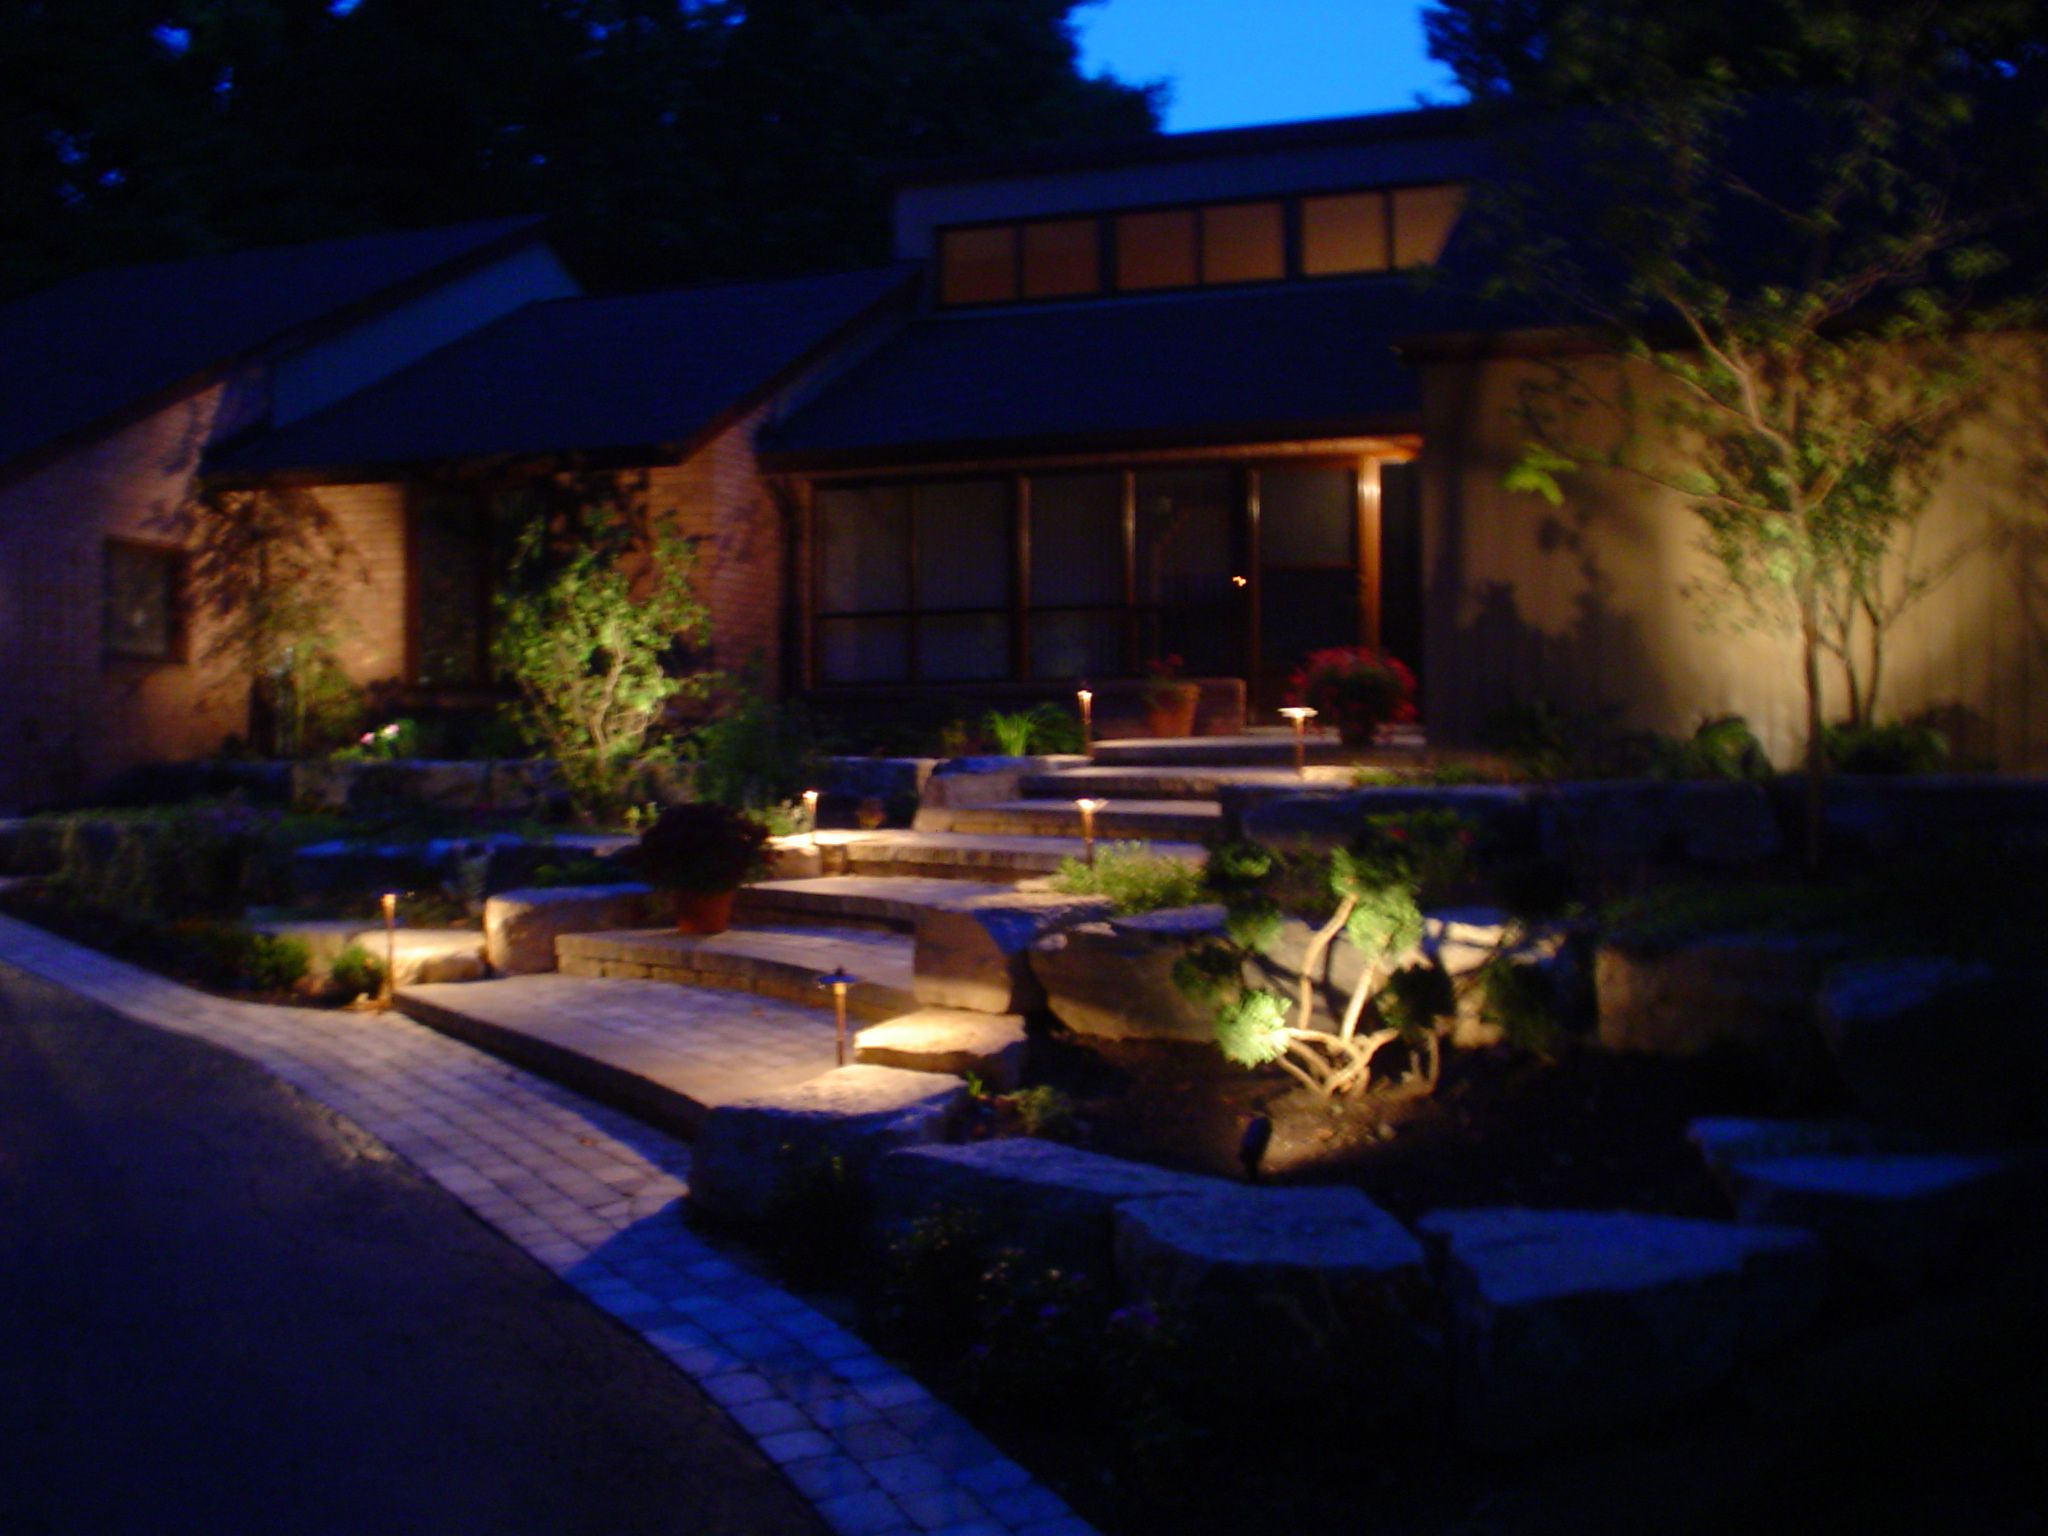 backyard++landscaping+lighting | Landscape Lighting - Low Voltage path  lights, spot